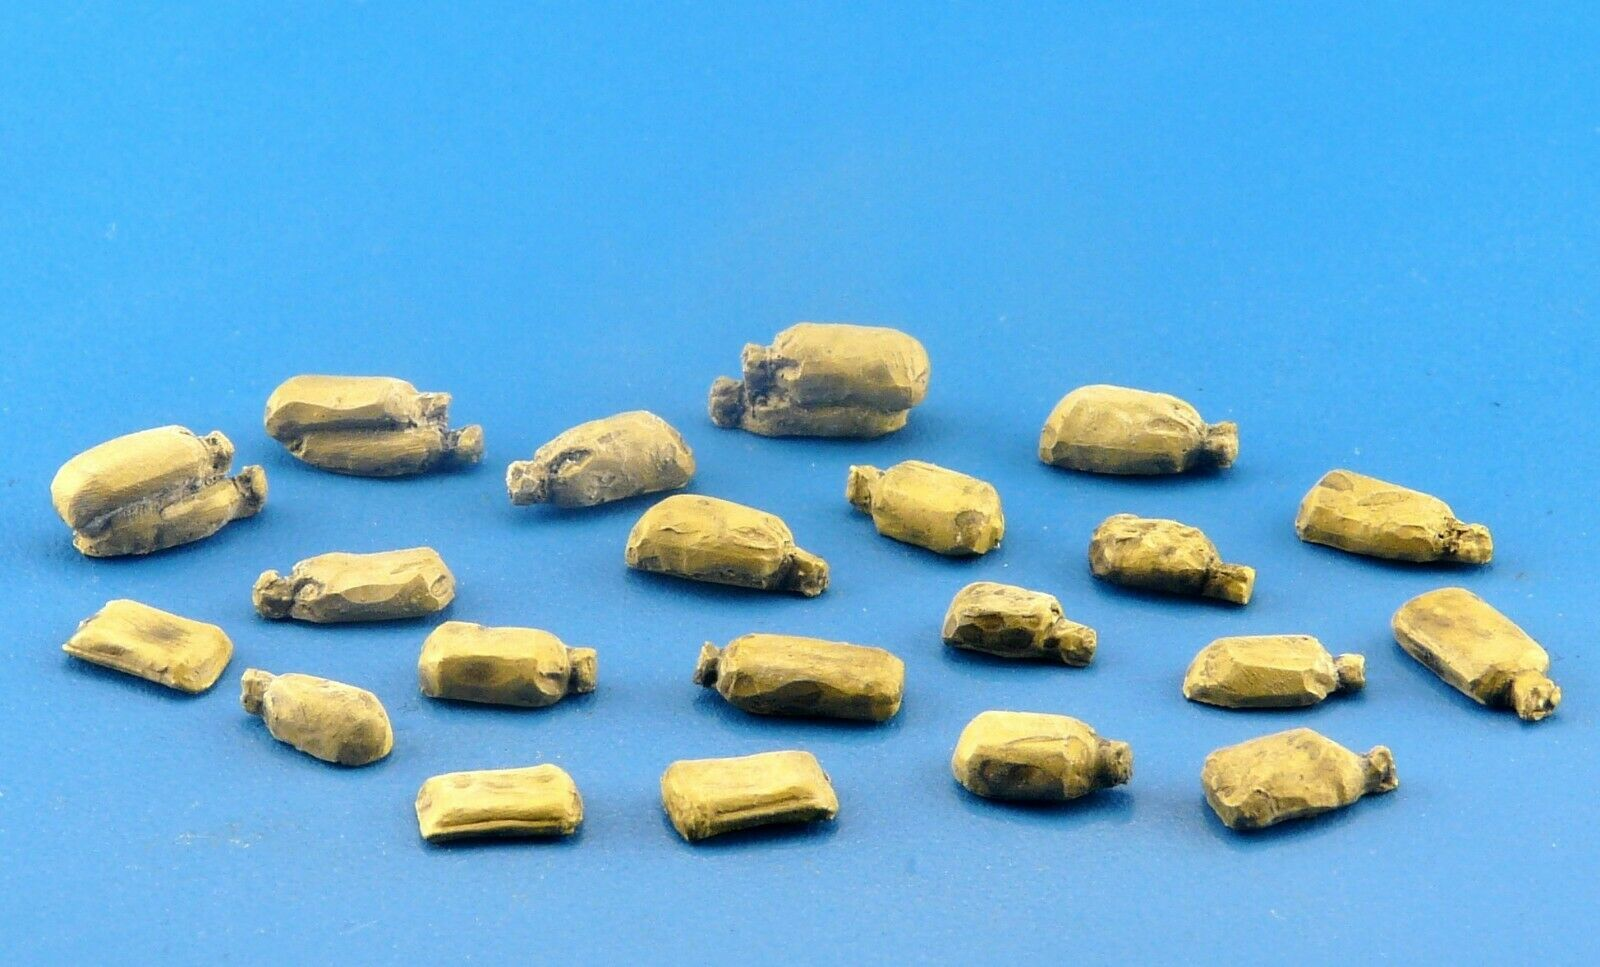 Redog 1:72 Sand Bags Kit Military Scale Modelling Stowage Diorama Accessorises - redoguk